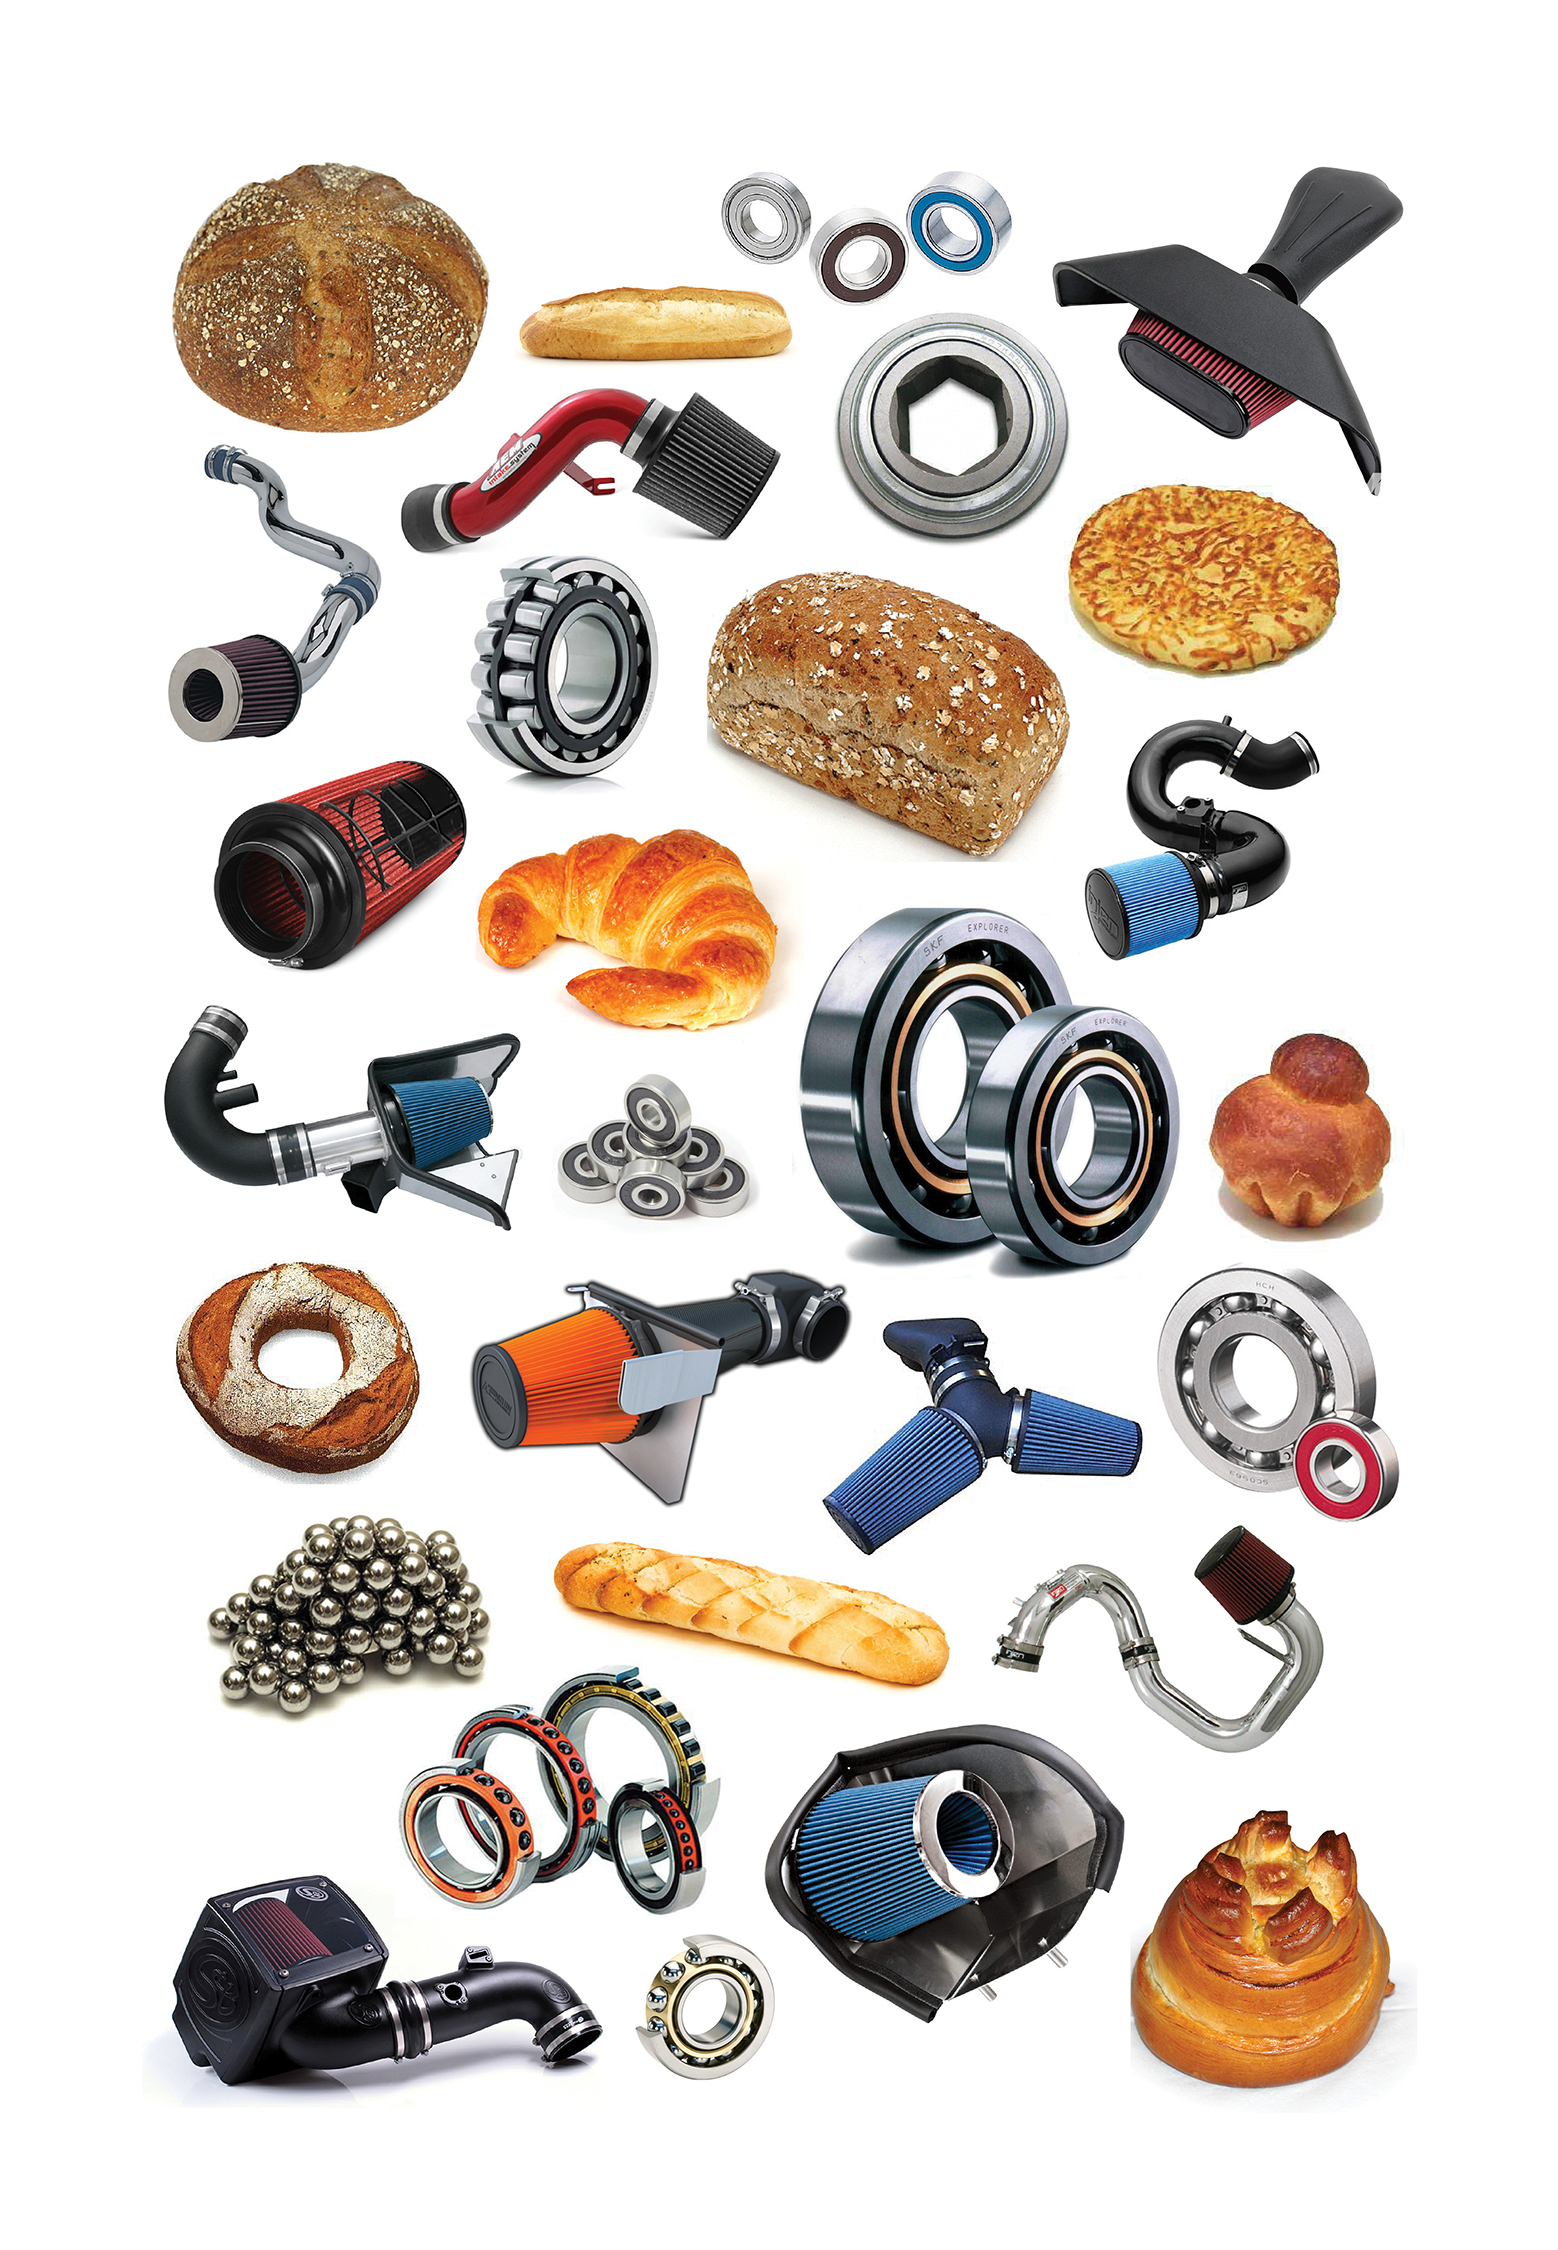 Jeff Gibson   Set of two untitled prints (  Bearings, bread, filters  )  ,  2014   Archival inkjet print Ed. 1 of 3